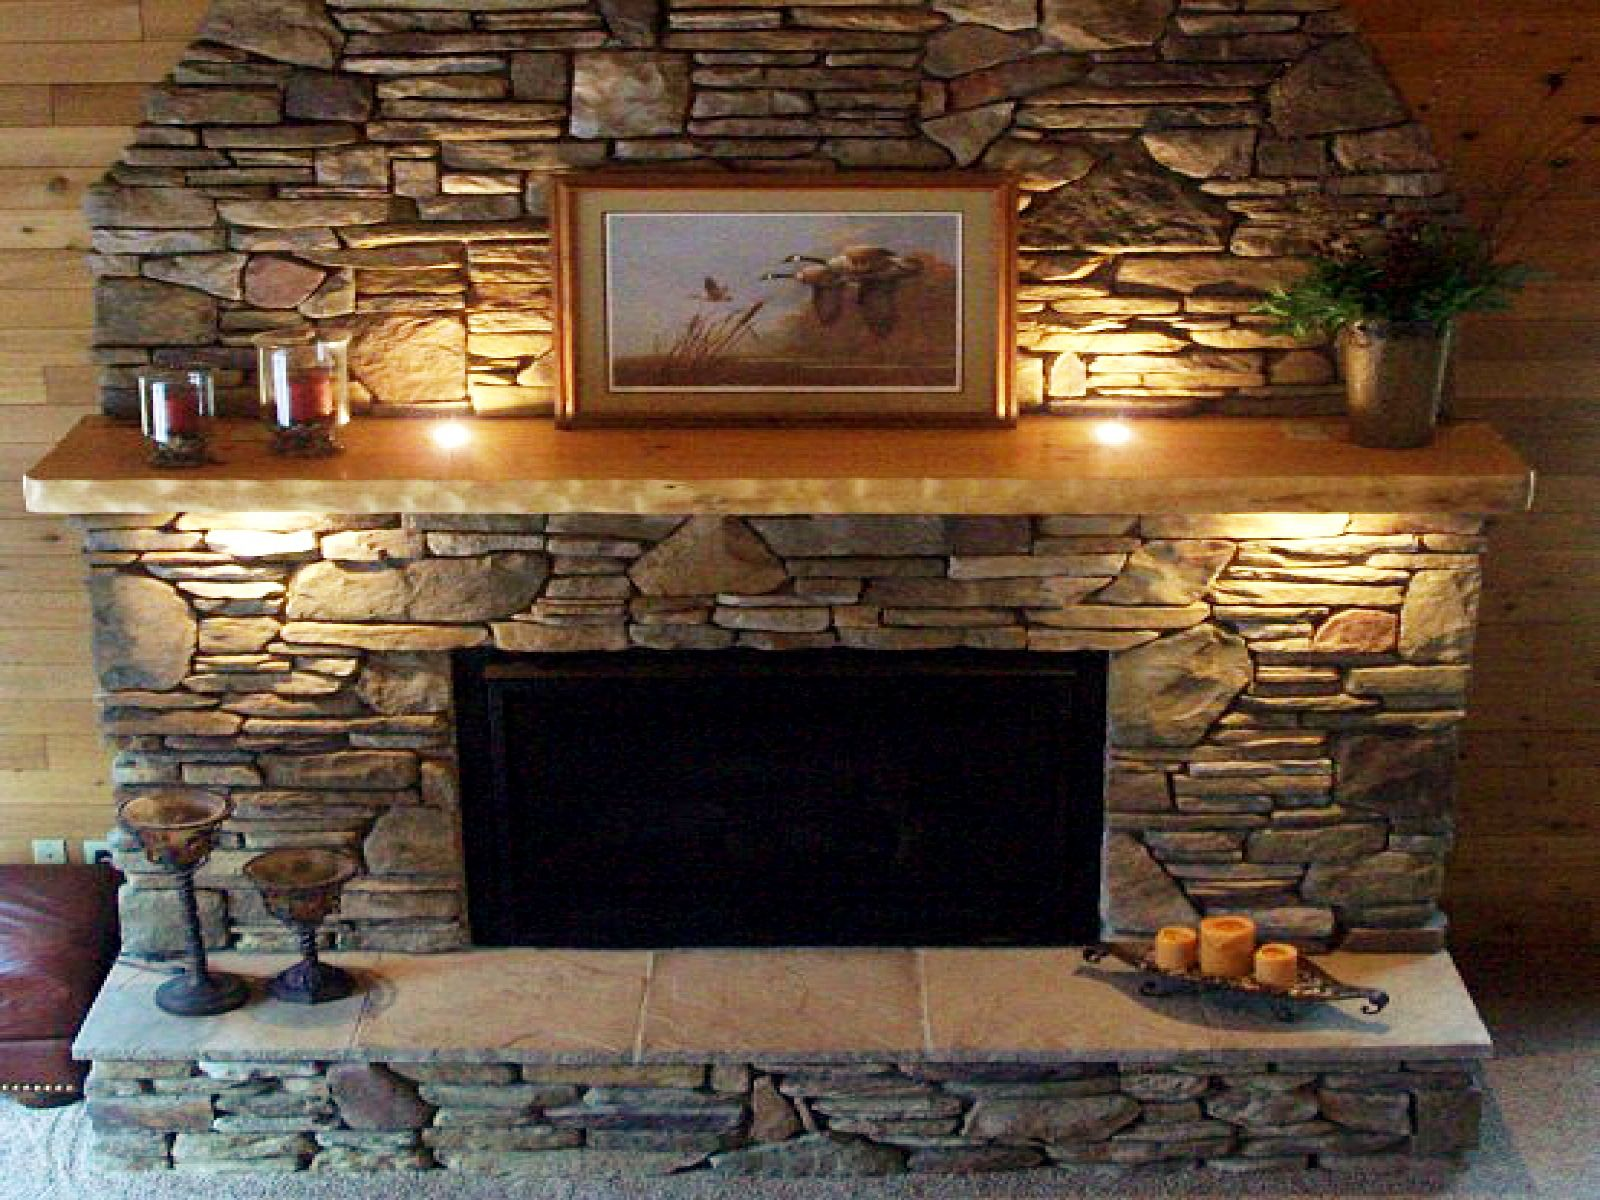 Living room design with stone fireplace - Livingroom Design Beautiful Stone Fireplaces Look More